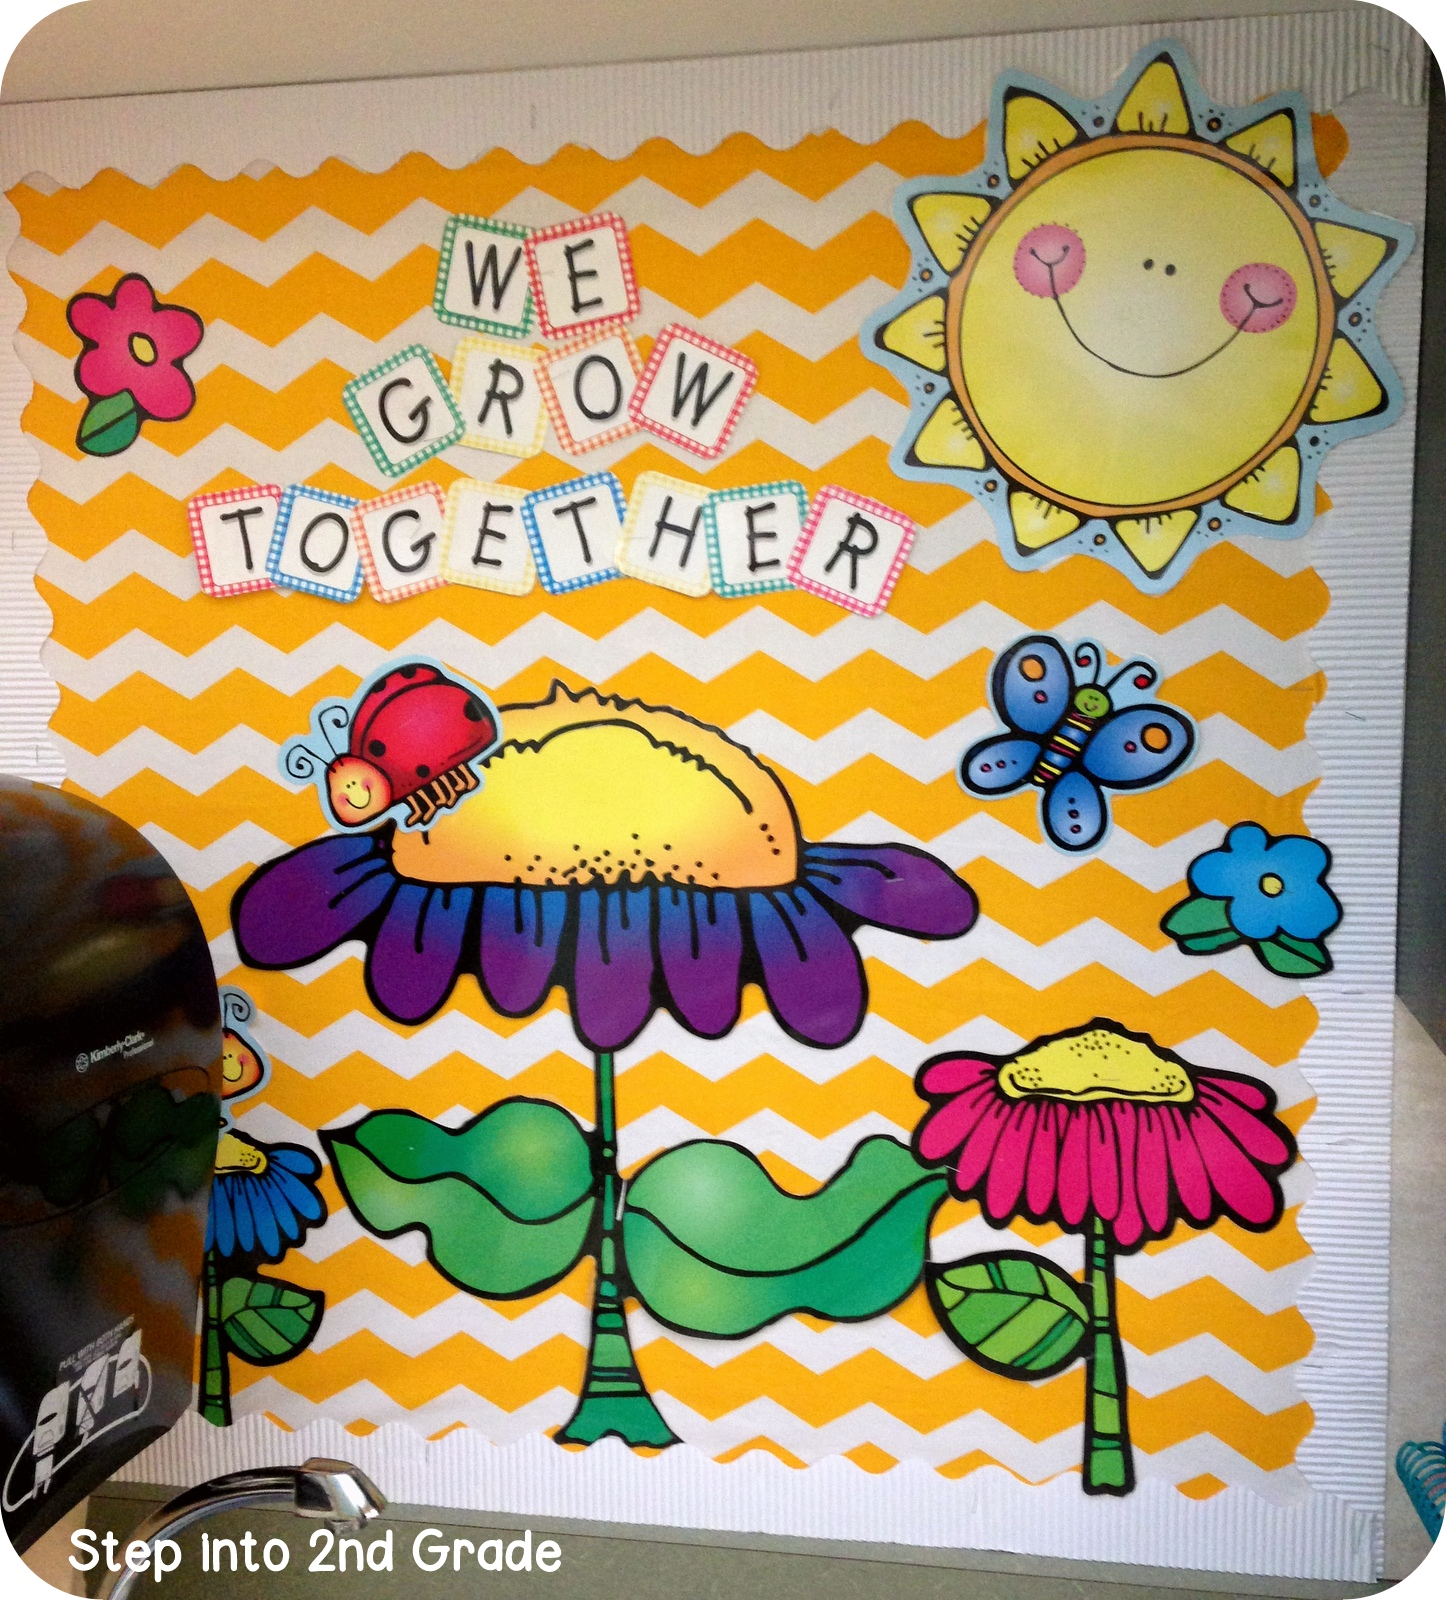 Classroom Decoration For Teachers Day ~ Step into nd grade with mrs lemons getting ready for